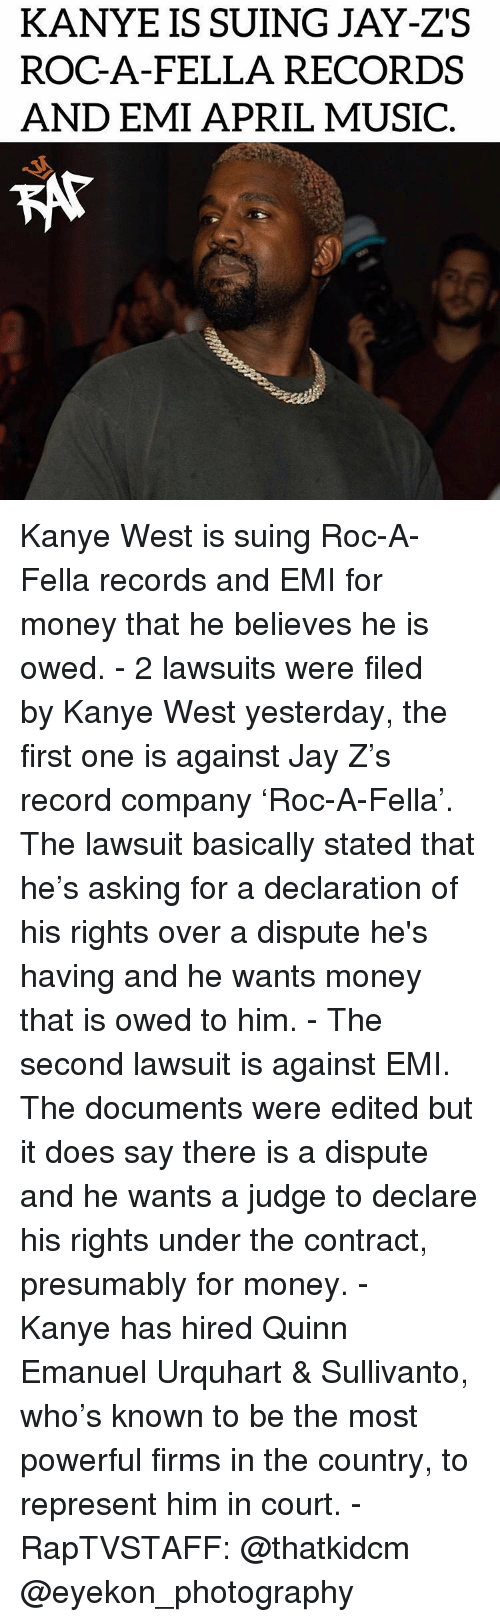 Jay, Jay Z, and Kanye: KANYE IS SUING JAY-ZS  ROC-A-FELLA RECORDS  AND EMI APRIL MUSIC  KAT Kanye West is suing Roc-A-Fella records and EMI for money that he believes he is owed.⁣ -⁣ 2 lawsuits were filed by Kanye West yesterday, the first one is against Jay Z's record company 'Roc-A-Fella'. The lawsuit basically stated that he's asking for a declaration of his rights over a dispute he's having and he wants money that is owed to him.⁣ -⁣ The second lawsuit is against EMI. The documents were edited but it does say there is a dispute and he wants a judge to declare his rights under the contract, presumably for money.⁣ -⁣ Kanye has hired Quinn Emanuel Urquhart & Sullivanto, who's known to be the most powerful firms in the country, to represent him in court.⁣ -⁣ RapTVSTAFF: @thatkidcm⁣ @eyekon_photography⁣